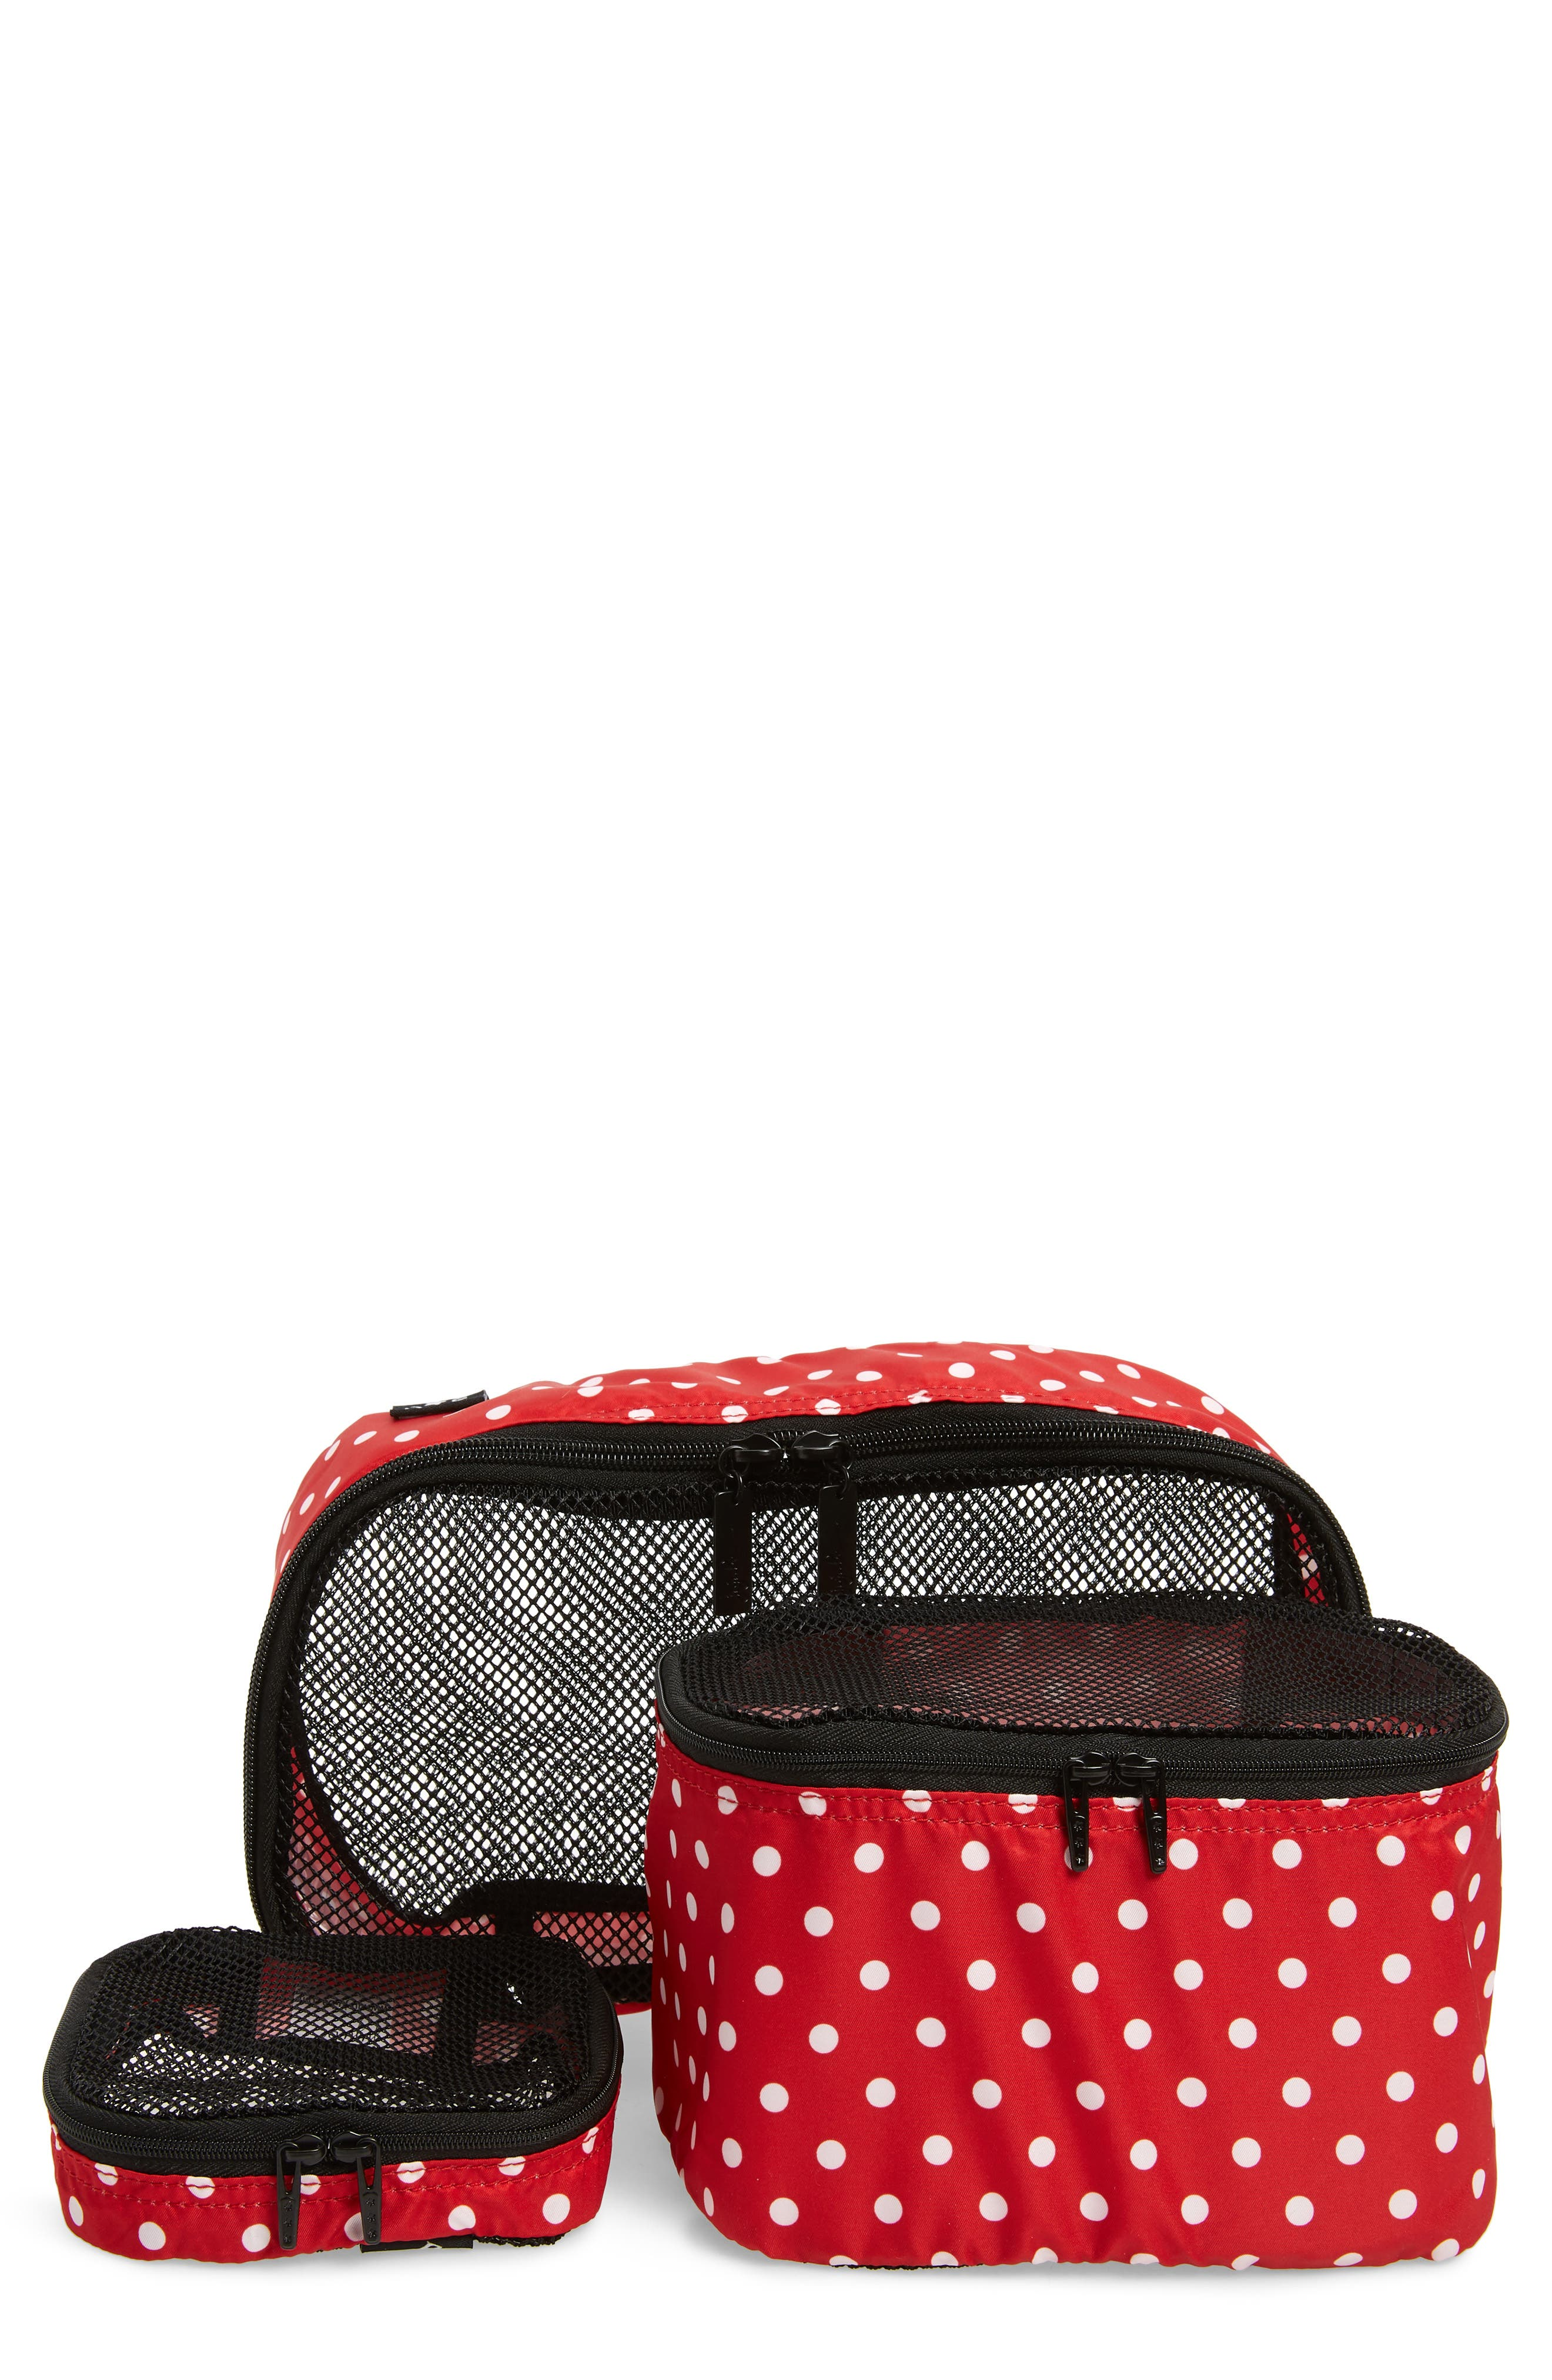 Be Organized Set of 3 Top Zip Cases,                         Main,                         color, Black Ruby